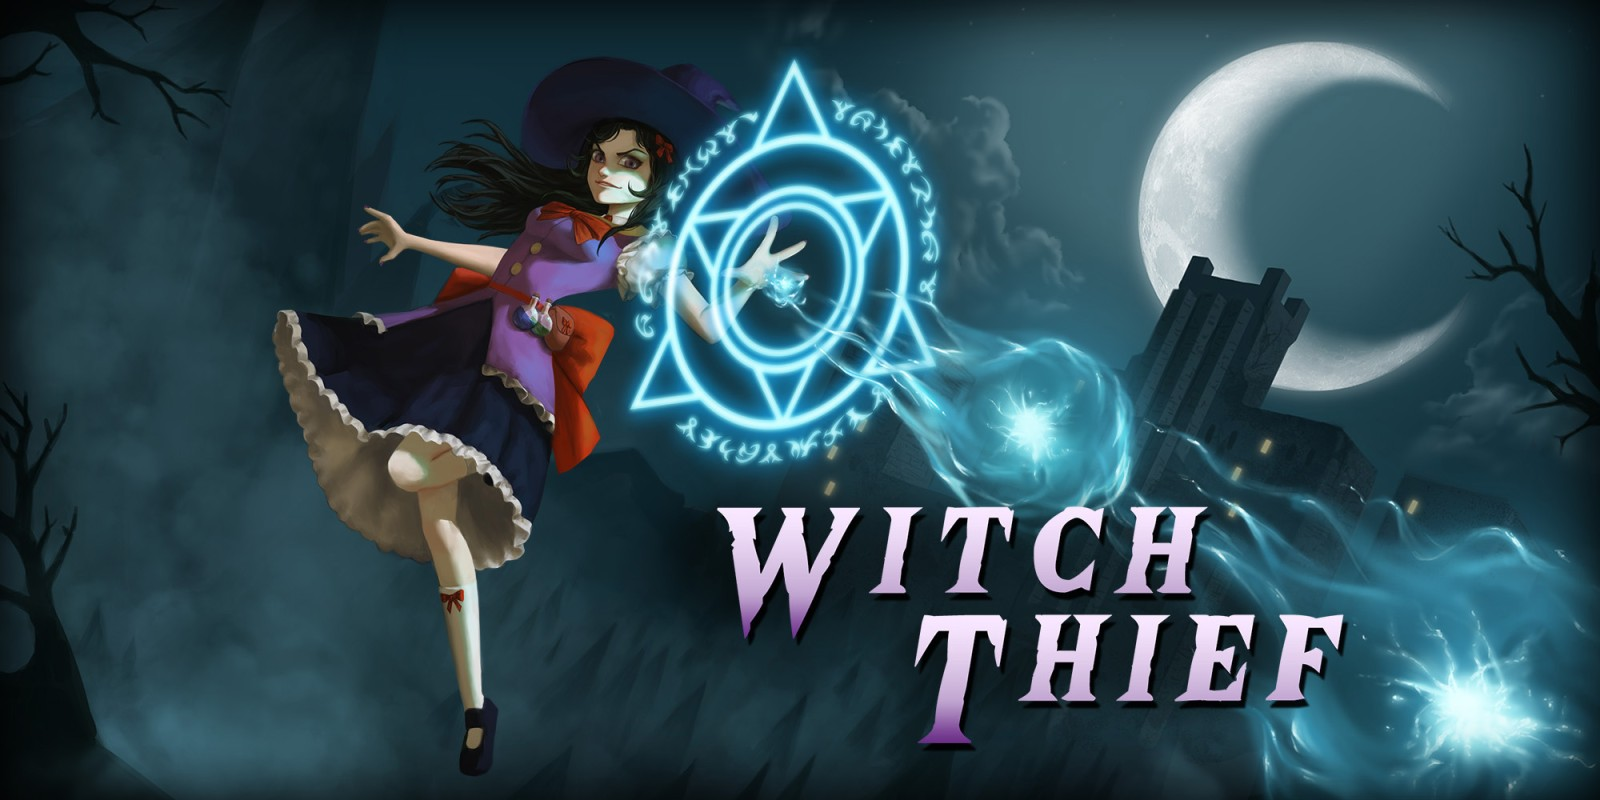 Witch Thief